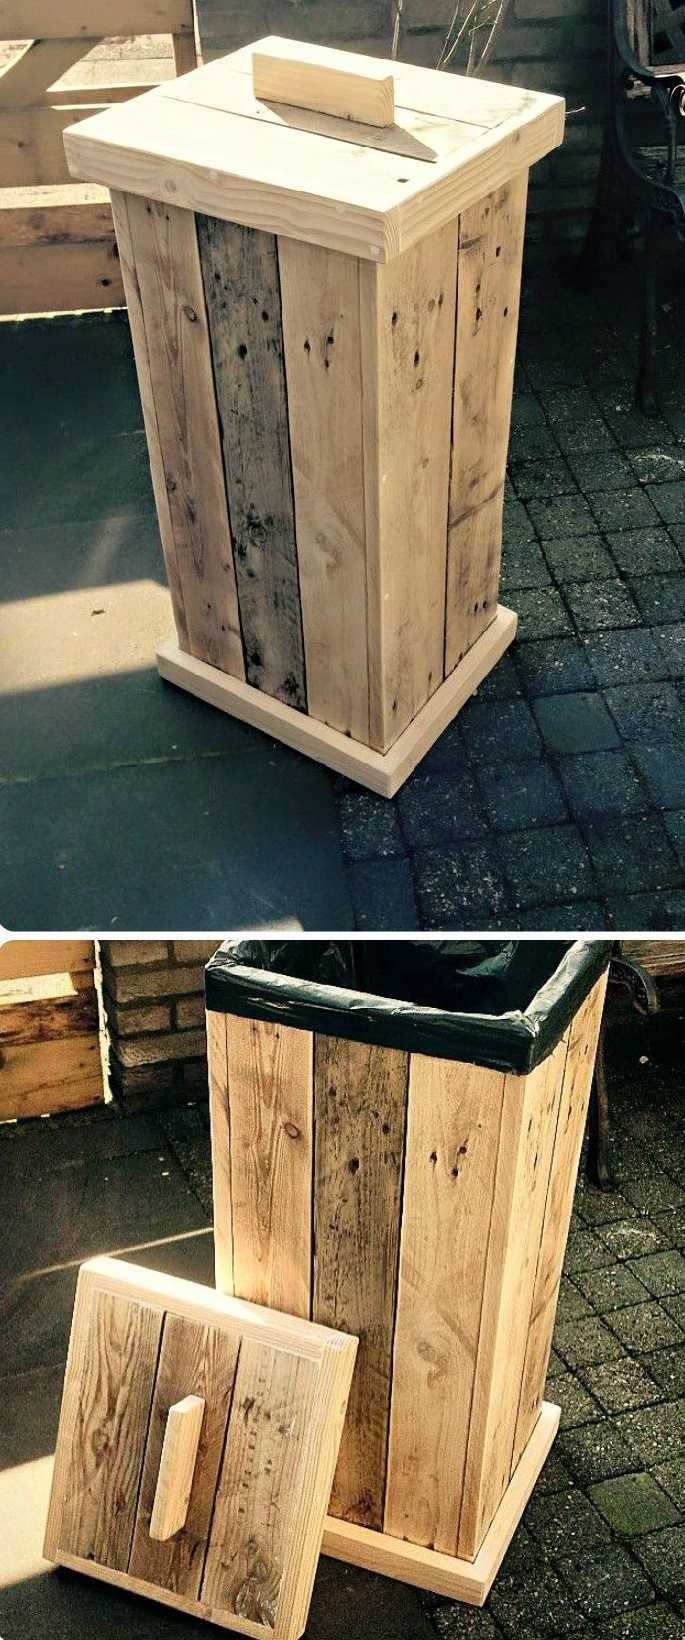 kitchen cabinet with trash bin with Projects You Can Create Using Old Pallets on Outdoor Storage Bin additionally Euro Cargo 50 Waste Bin 70 Litres For Cabi  500 Mm Cabi also Hafele Pull Out Waste Bin 40 Litres moreover 321960926713 as well Brown Kitchen Trash Can With Lid Rattan Bathroom Trash Can Lid Fd4abb7532a60549.